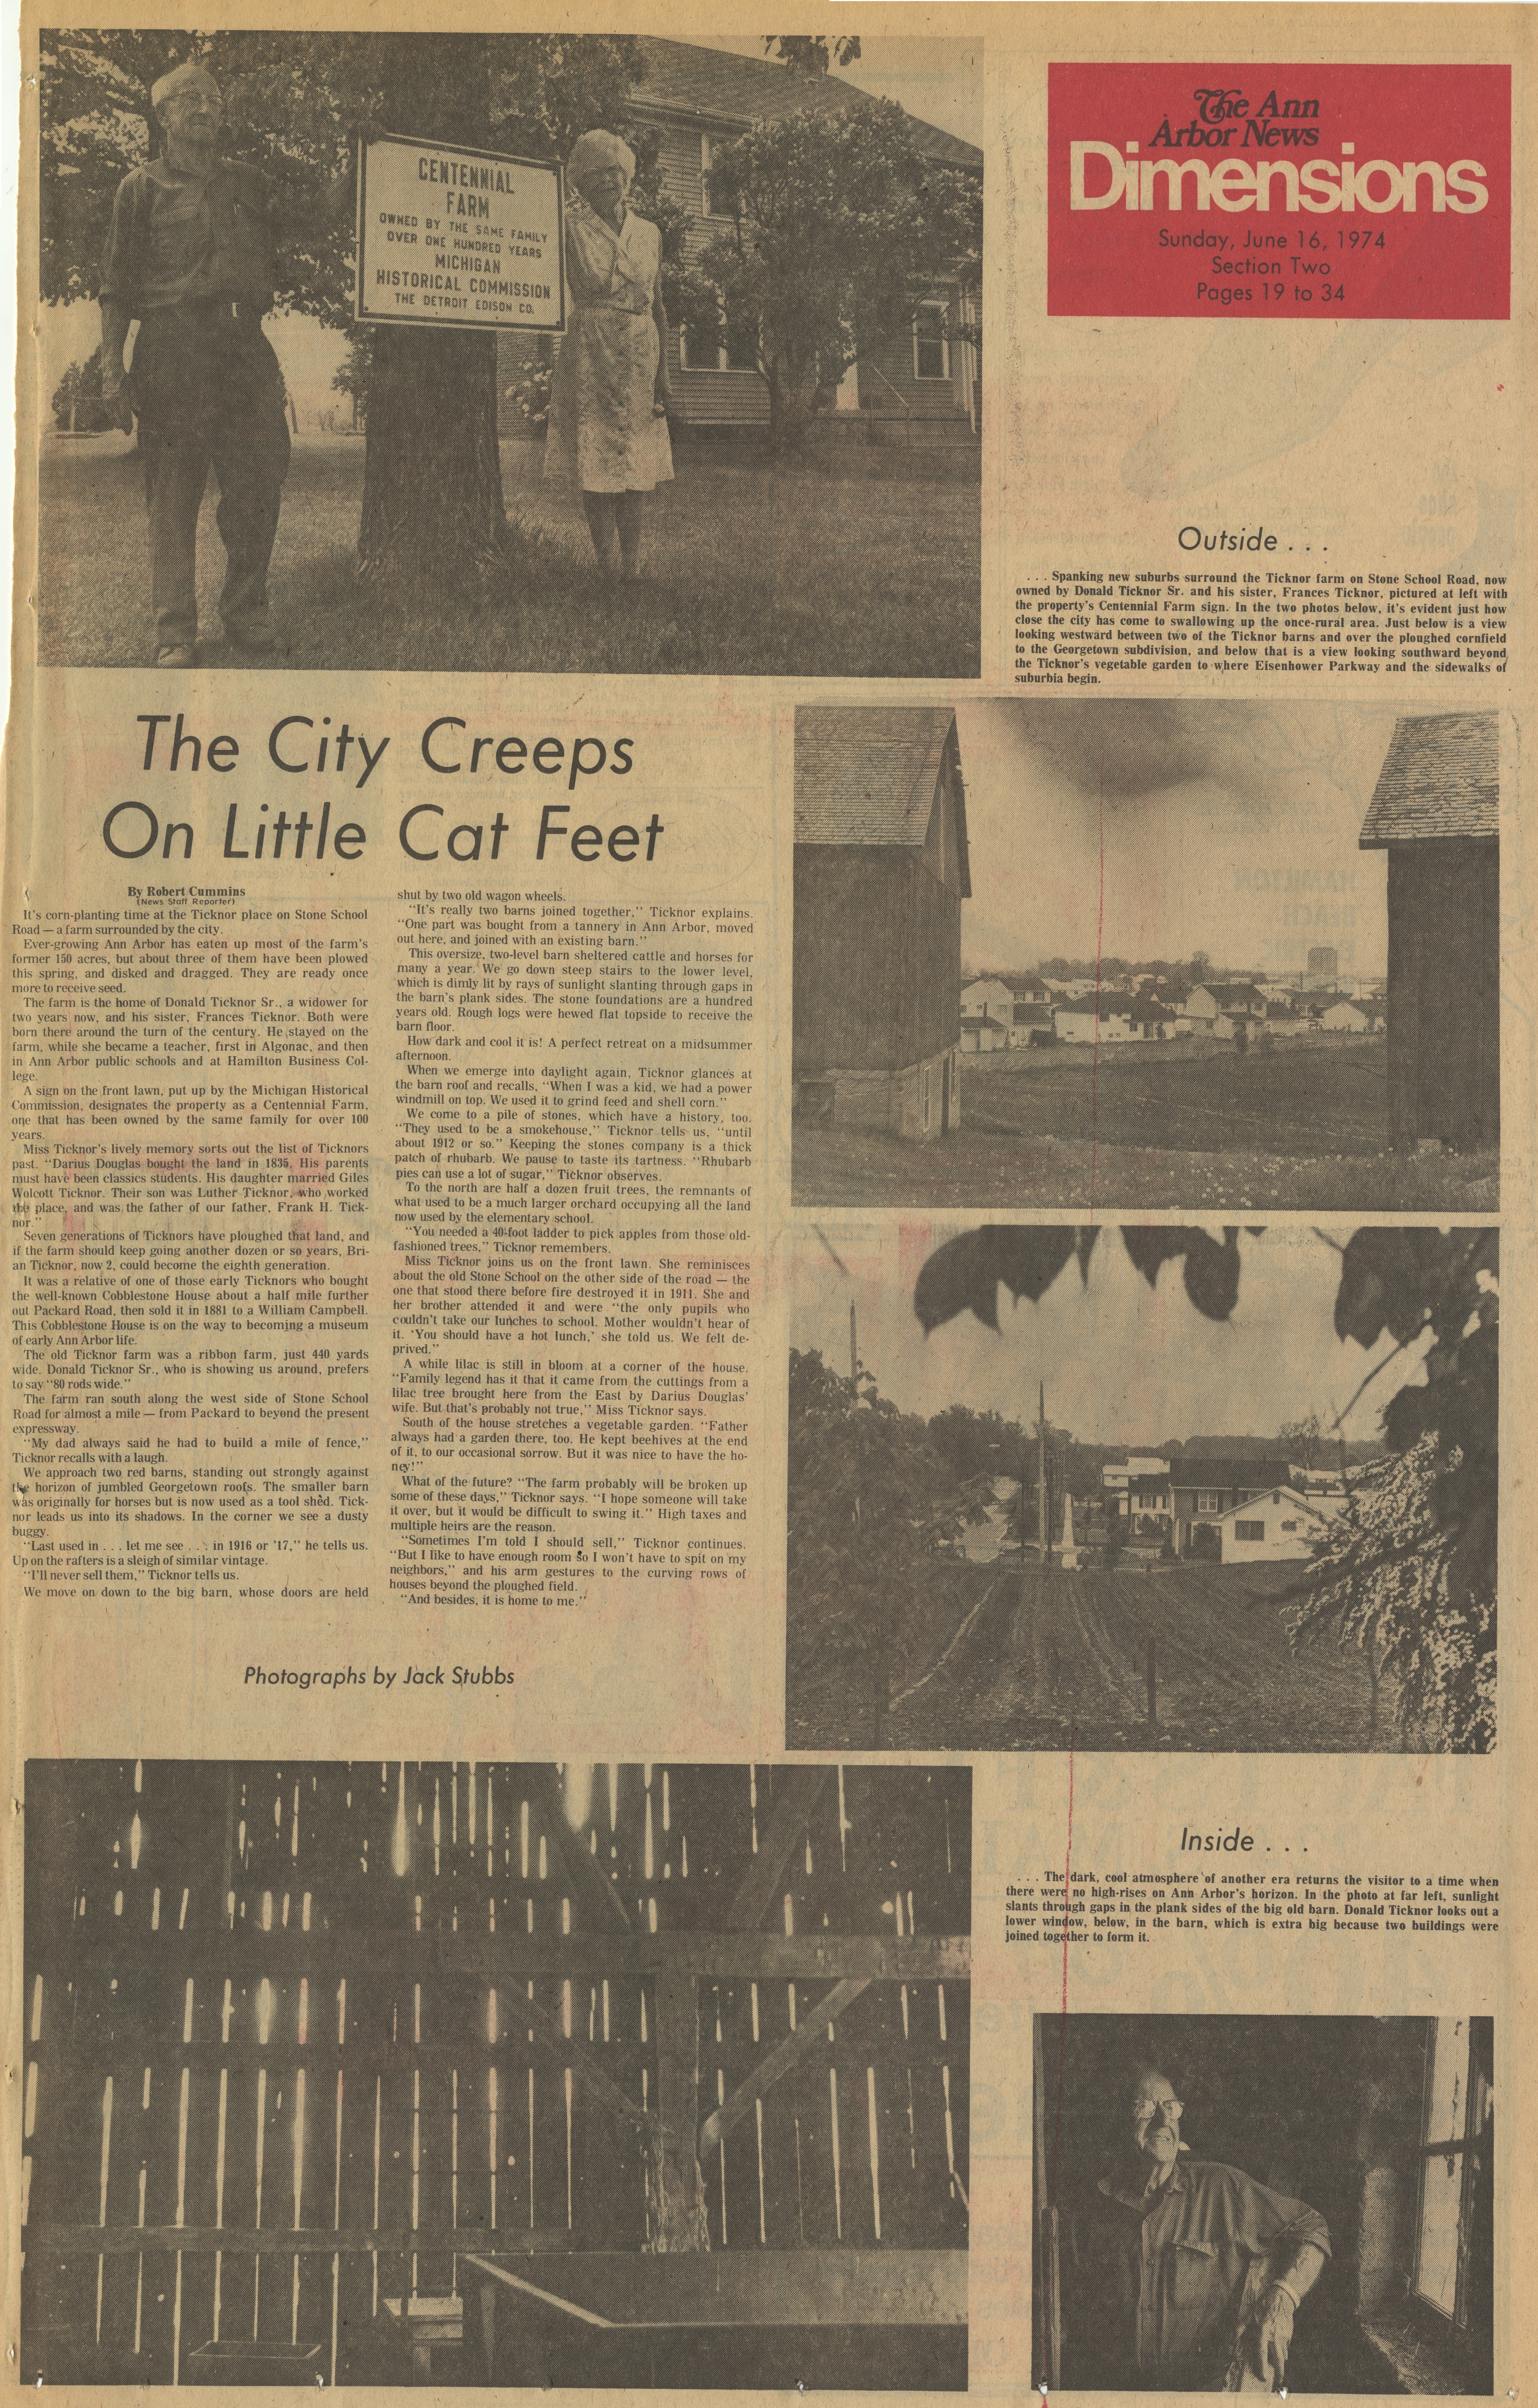 The City Creeps On Little Cat Feet image